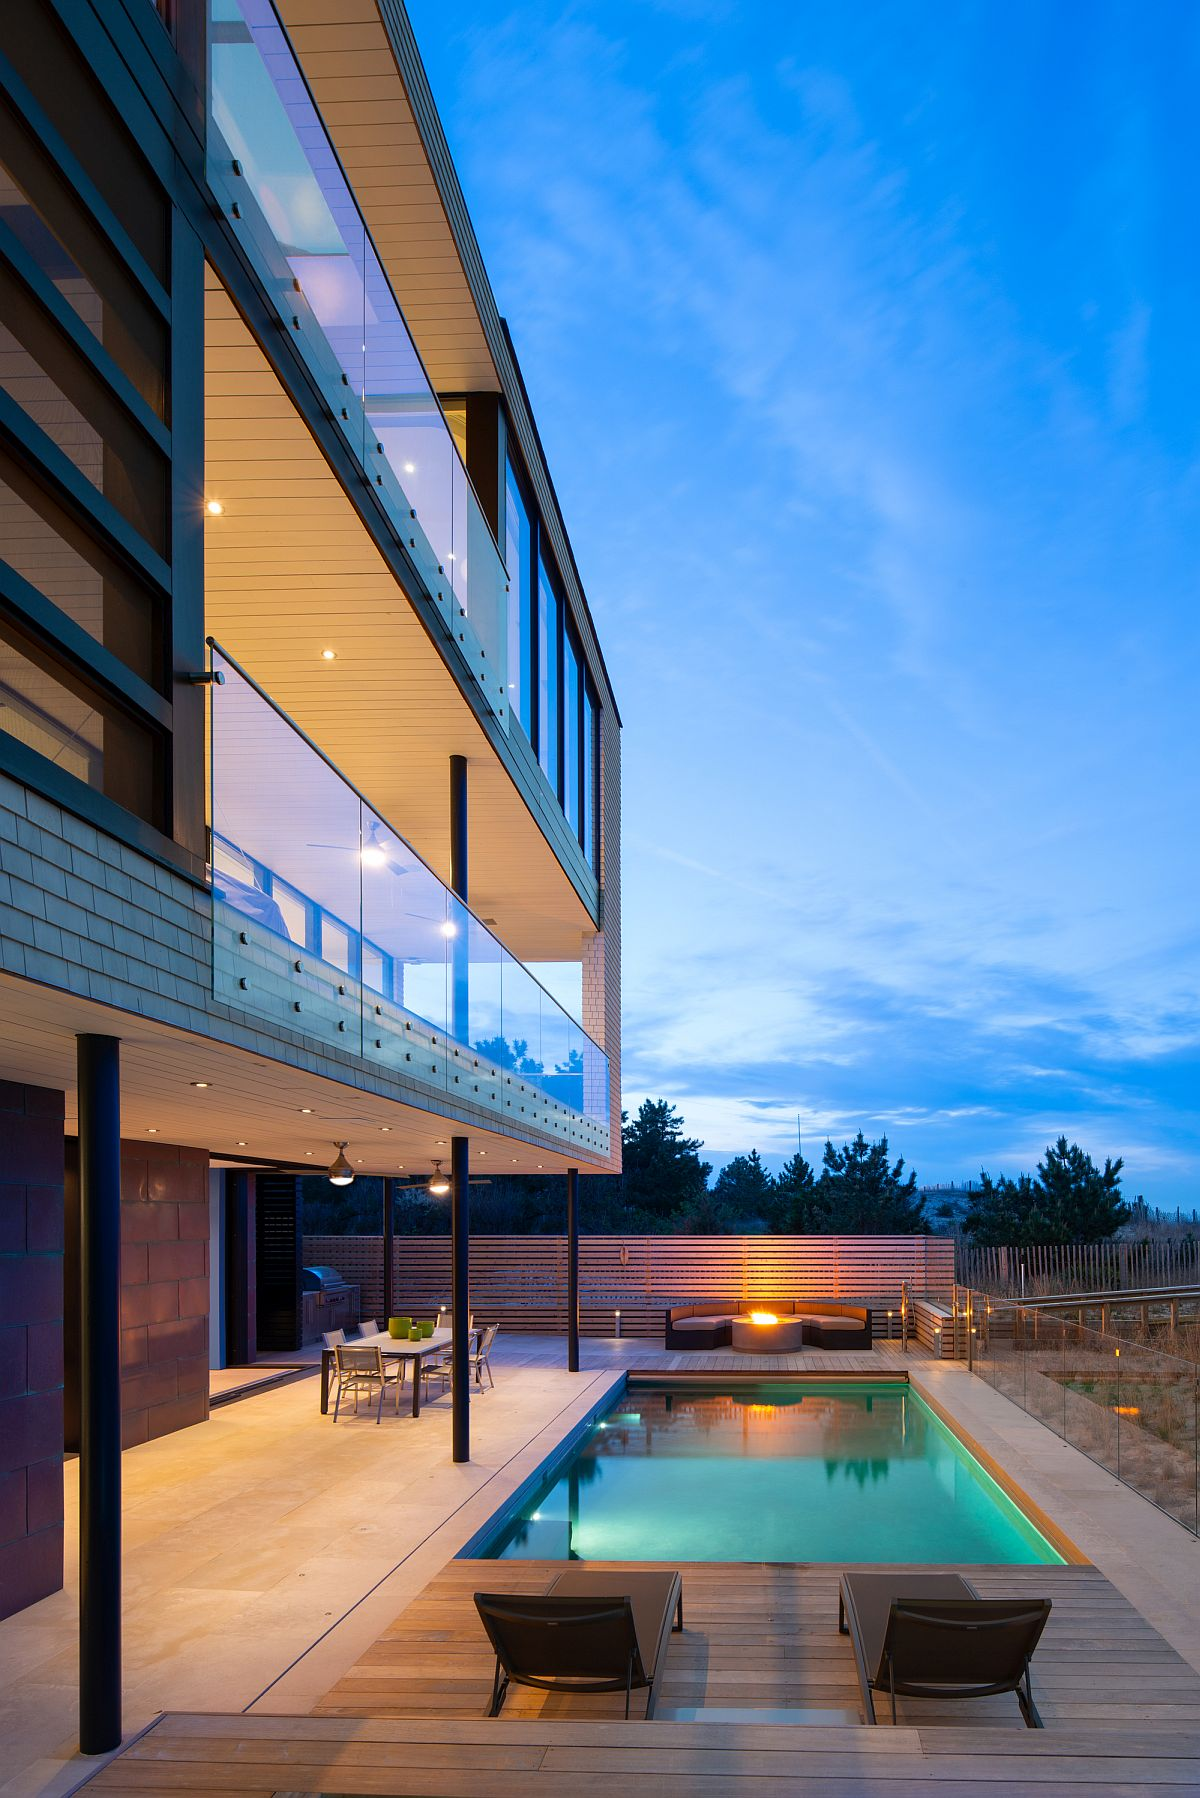 Gorgeous multi-level vacation home with fabulous deck and pool area